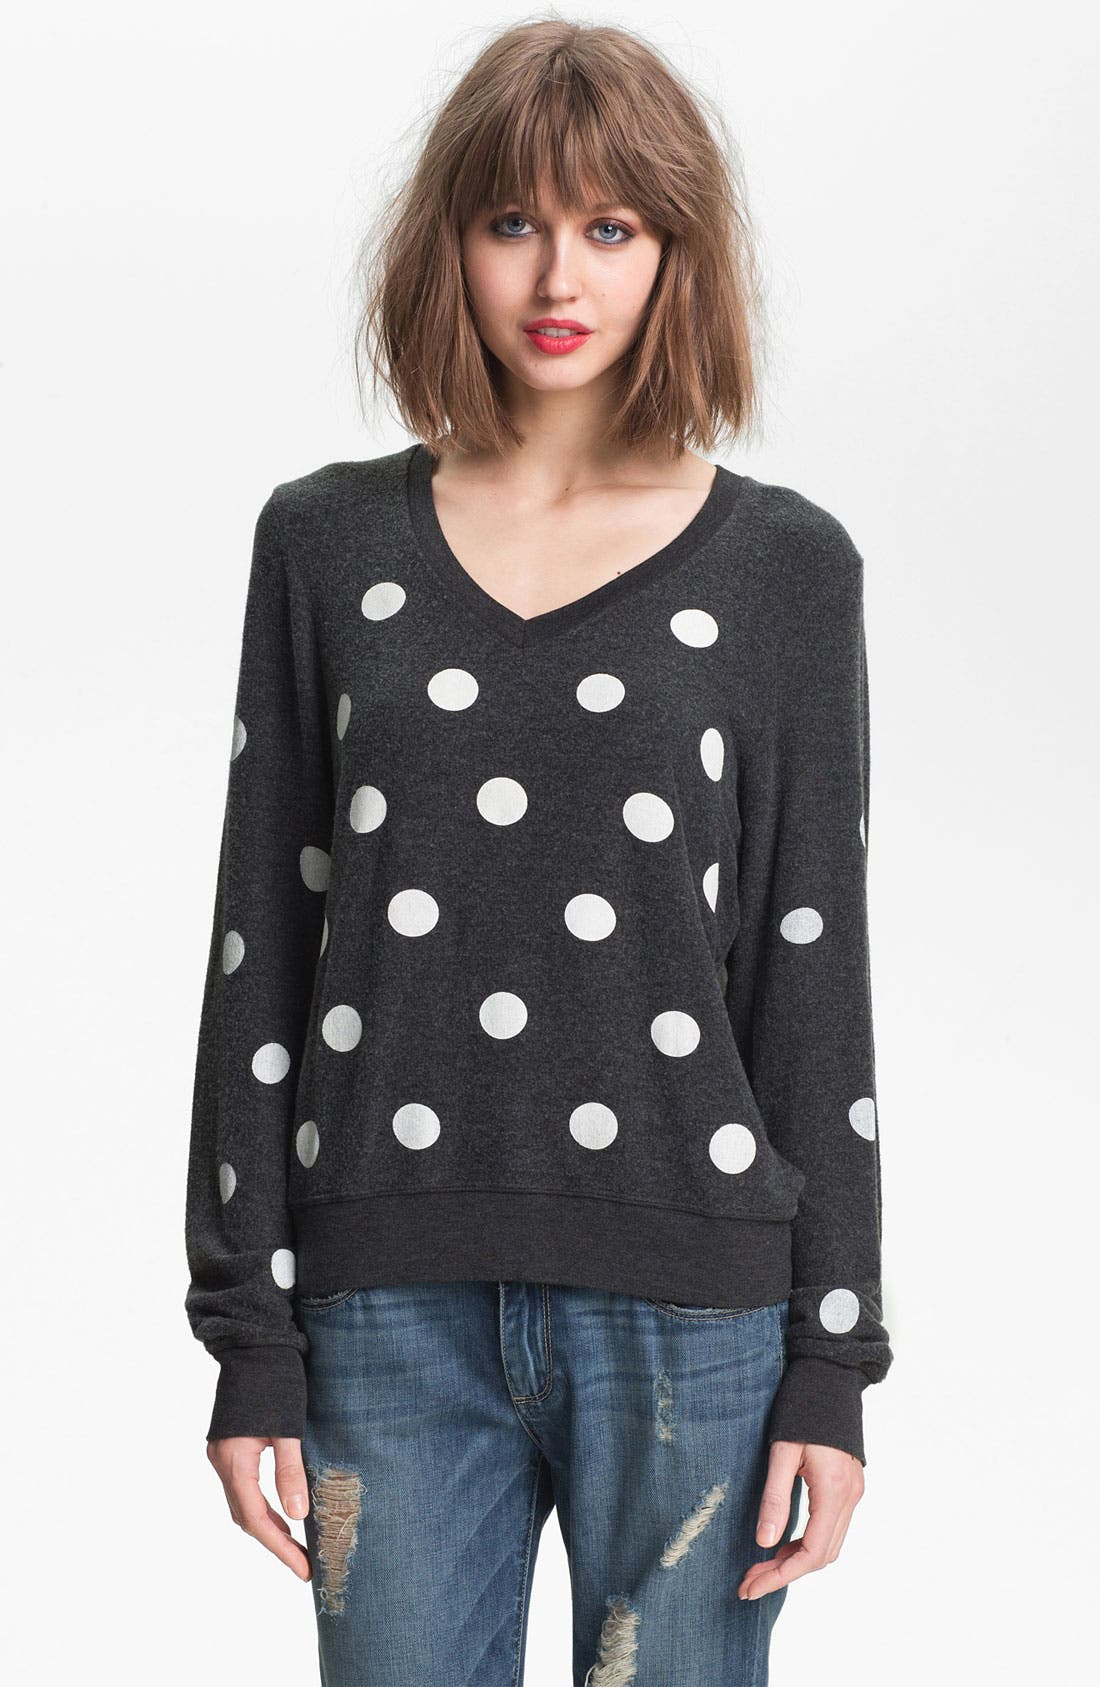 Main Image - Wildfox Polka Dot Sweatshirt (Nordstrom Exclusive)